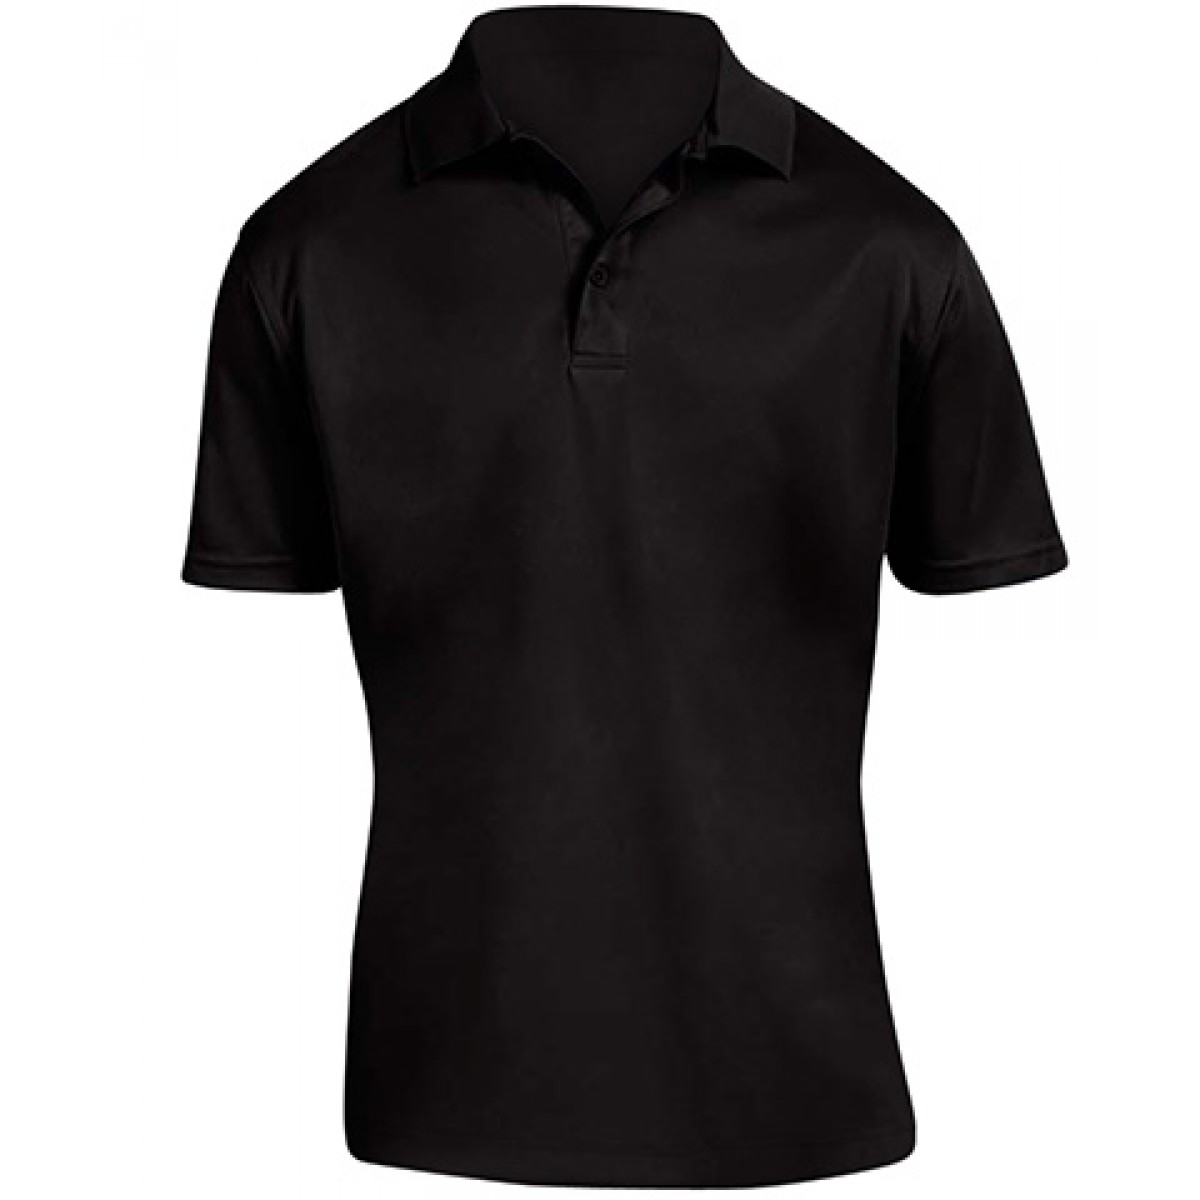 Men's 4 oz. Polytech Polo-Black-S